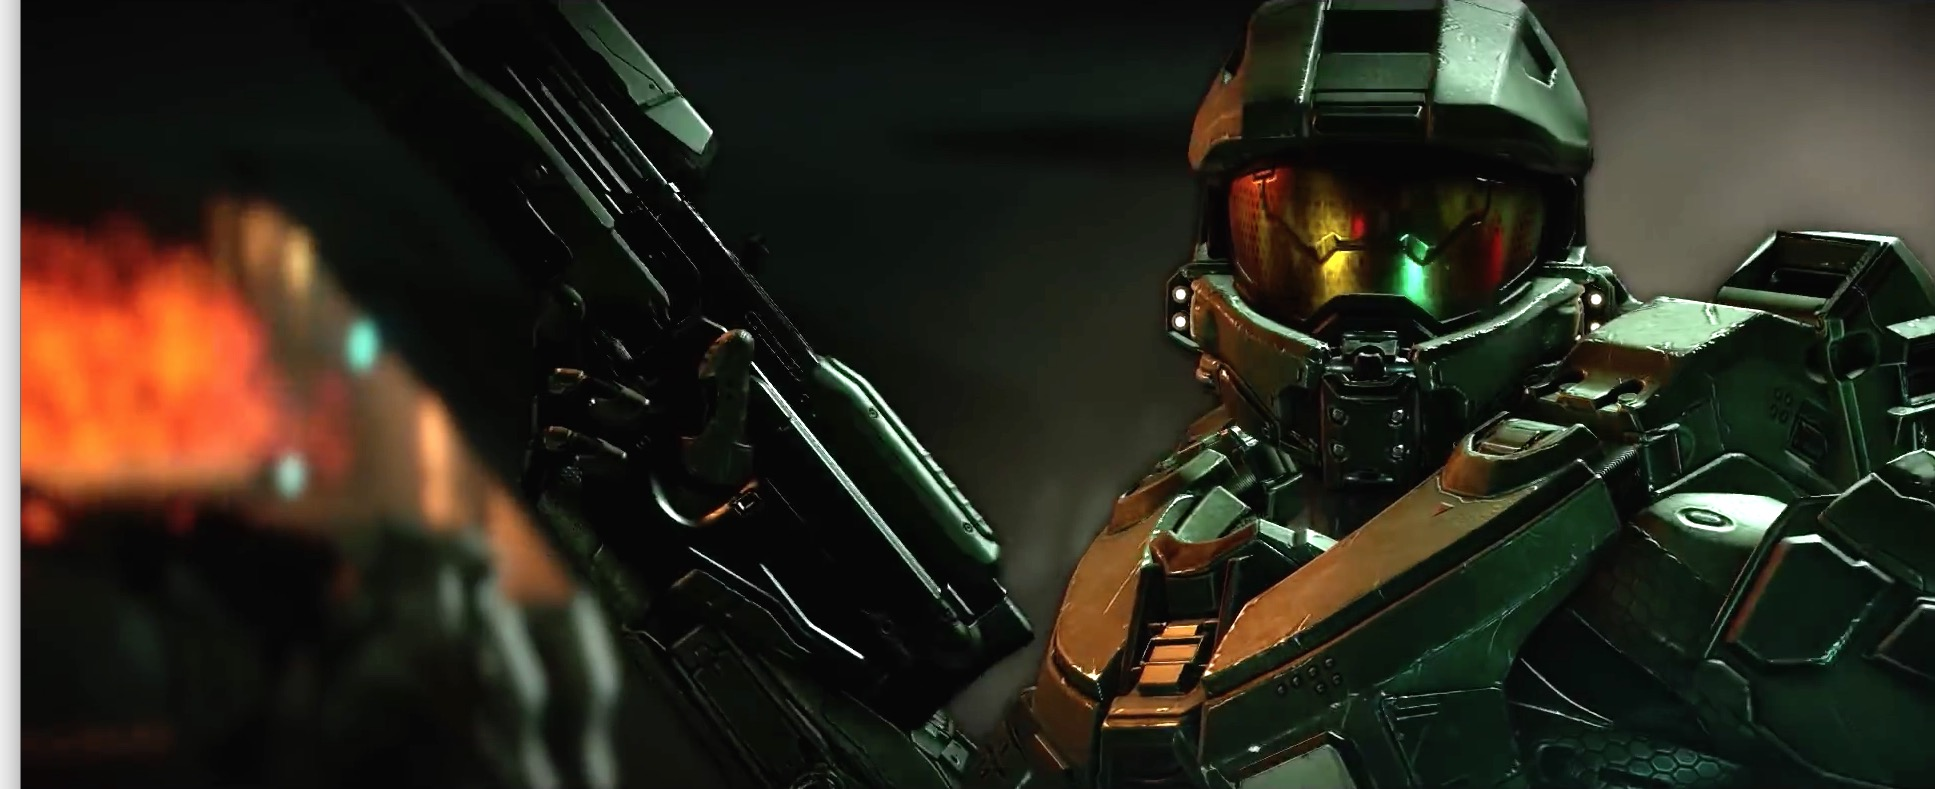 The Halo 5 tech that scales resolution to ensure 60fps and 'large-scale destruction'